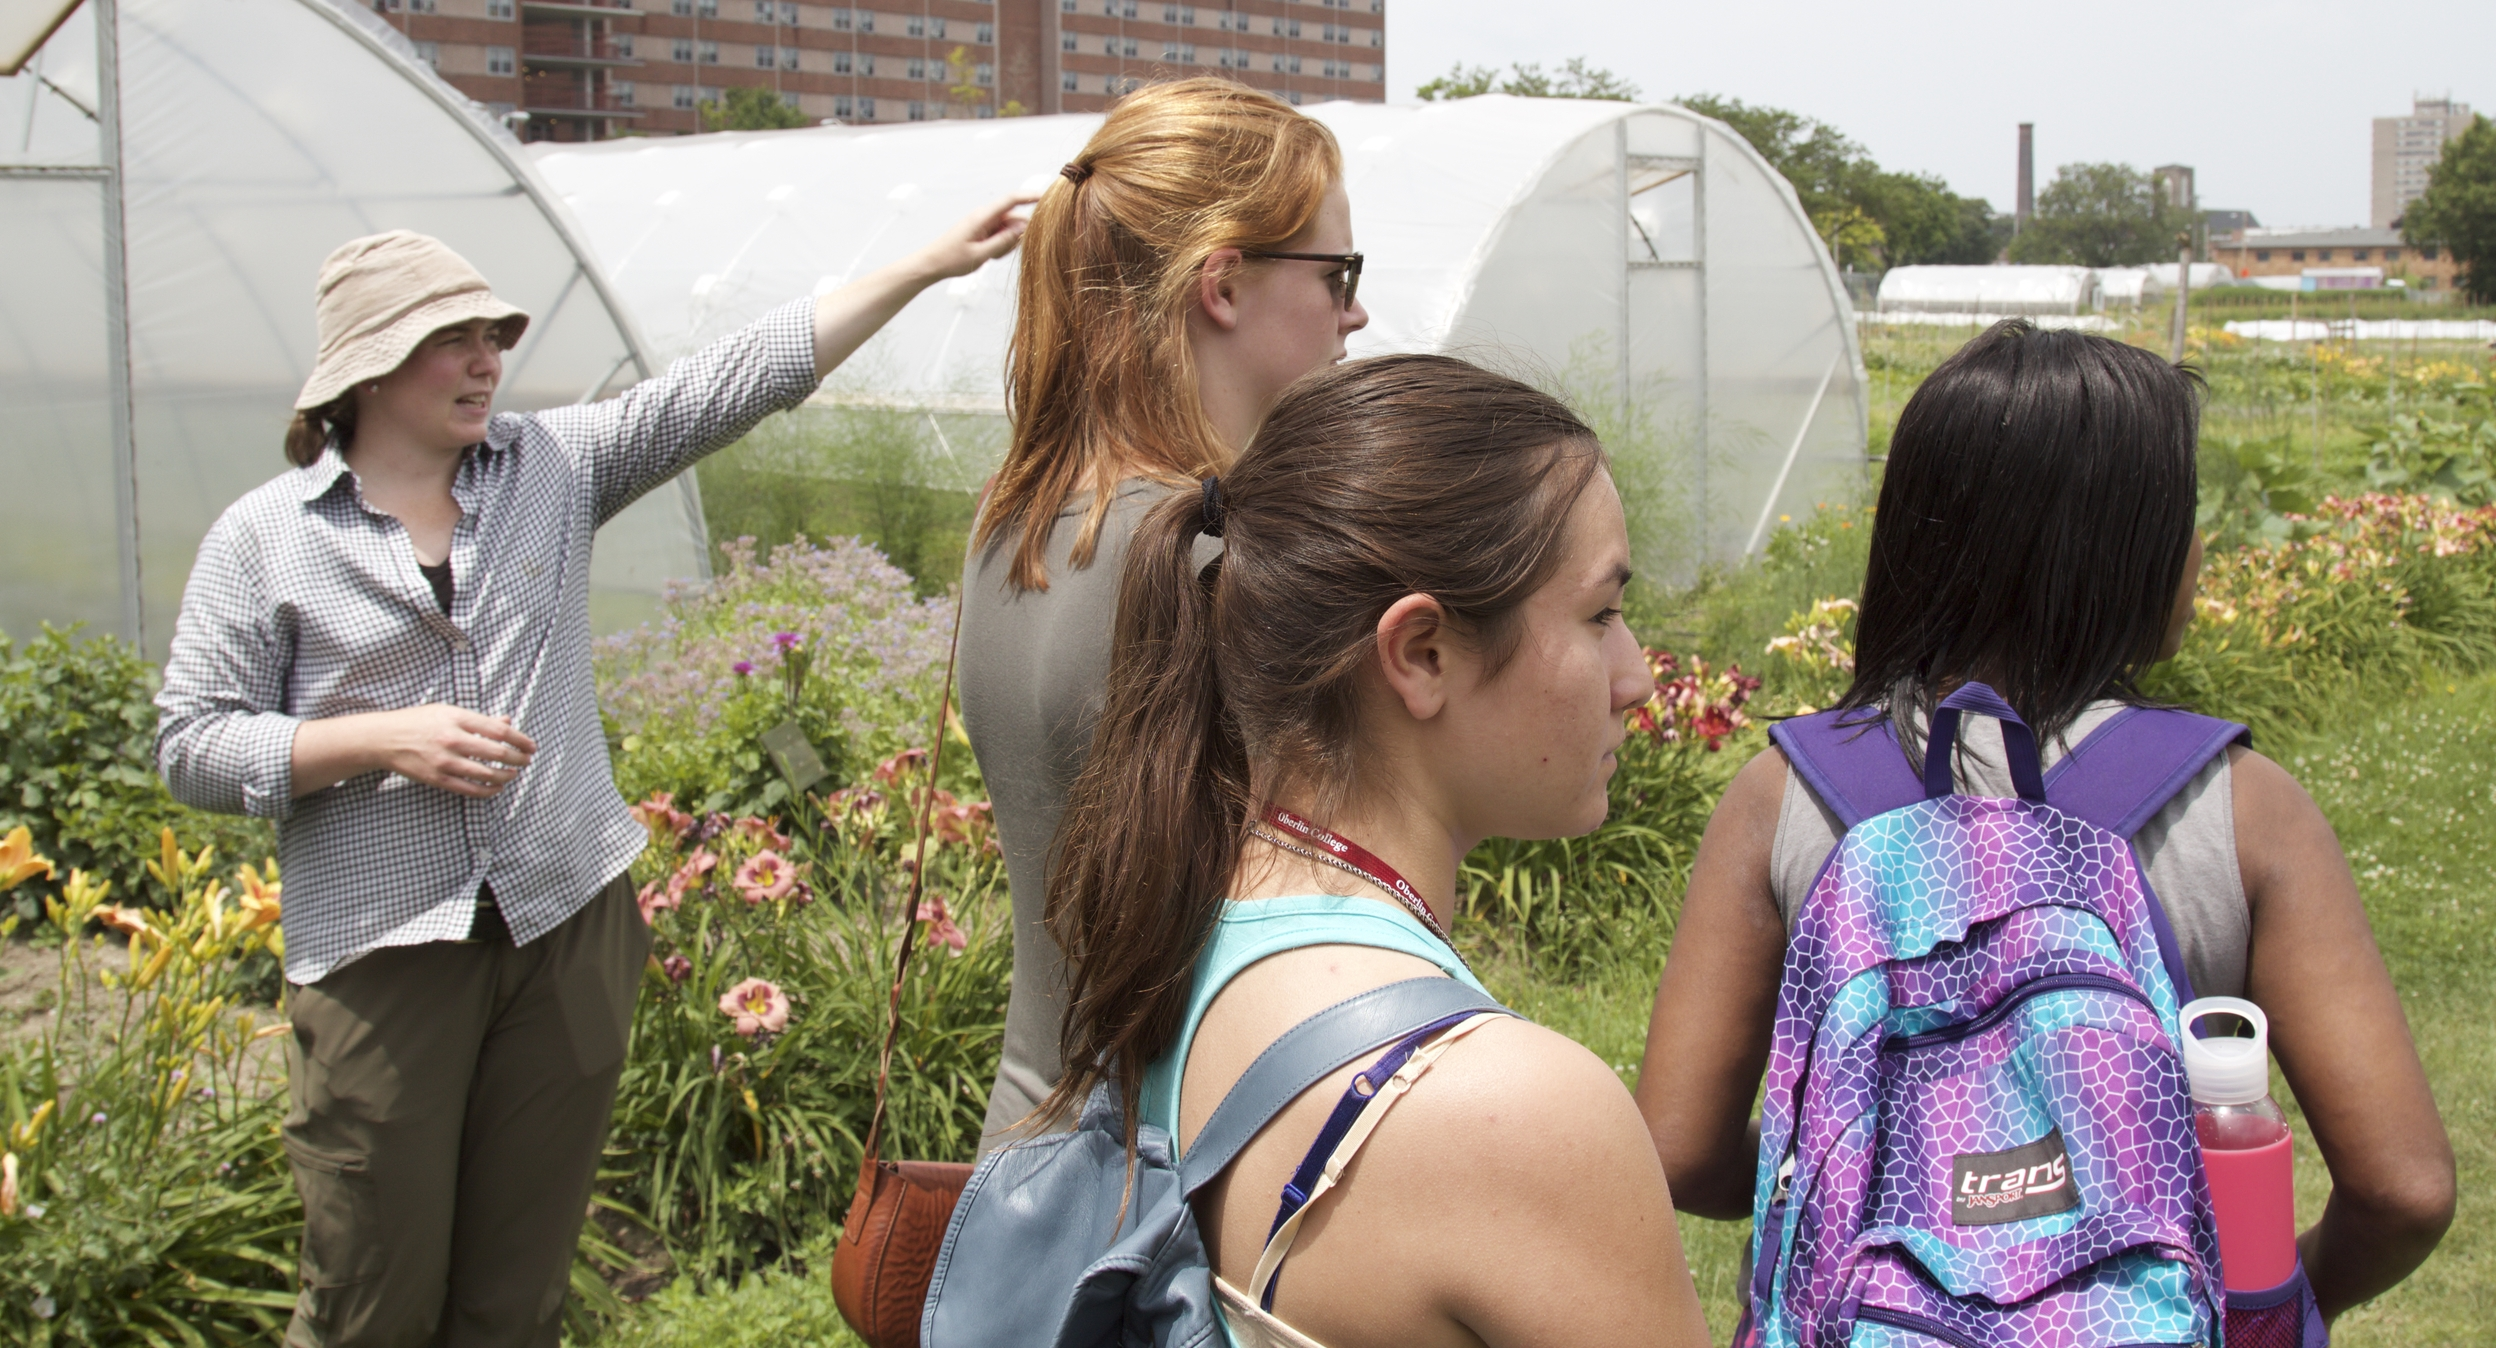 Students tour Ohio City Farm, the nation's largest contiguous urban farm, with Maggie Fitzpatrick,Director of Agricultural Empowerment, Refugee Response